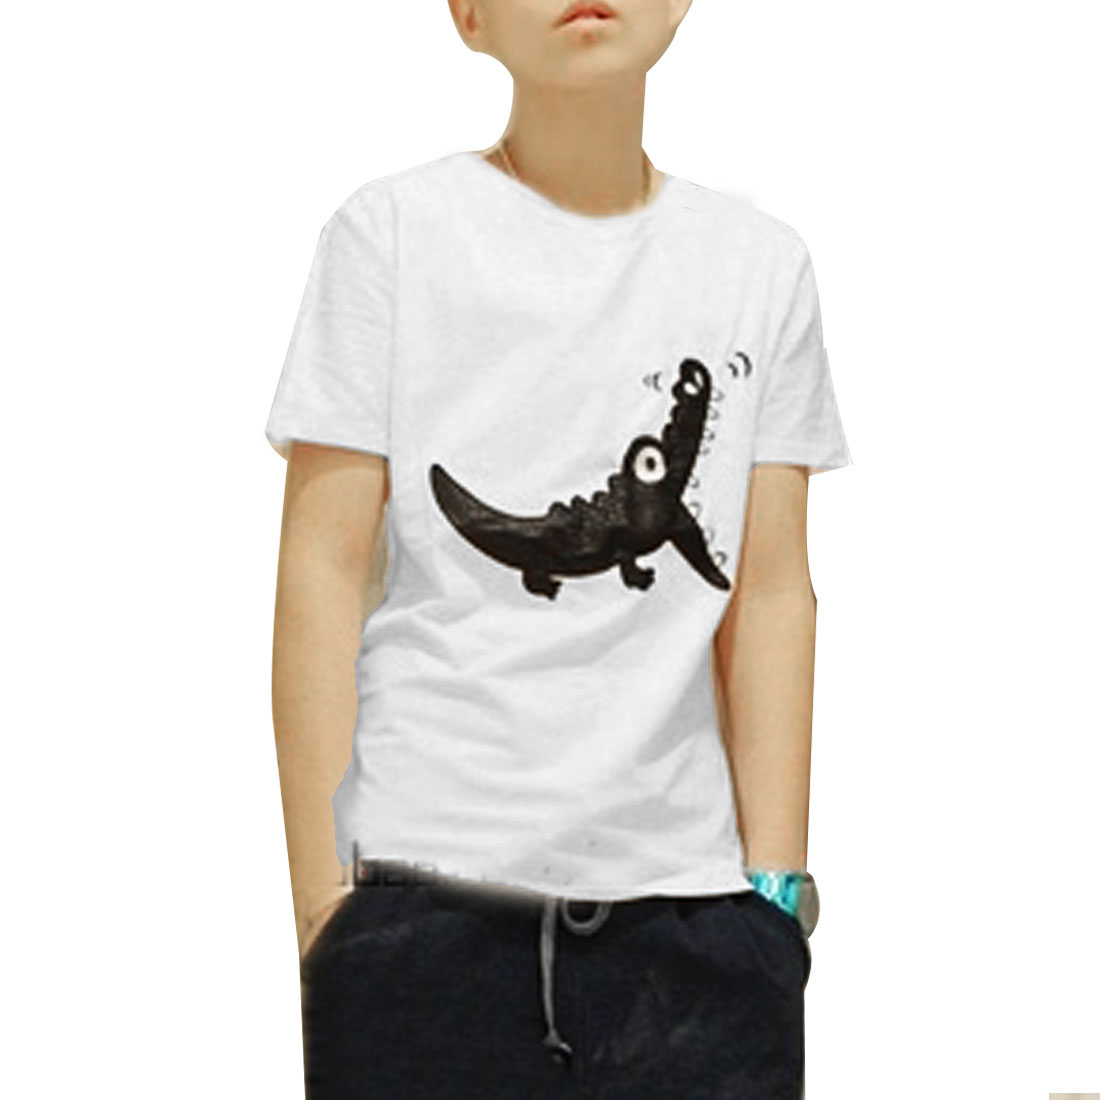 Man Fashional Embroidery Crocodile Embellished T-Shirt Blouse White M